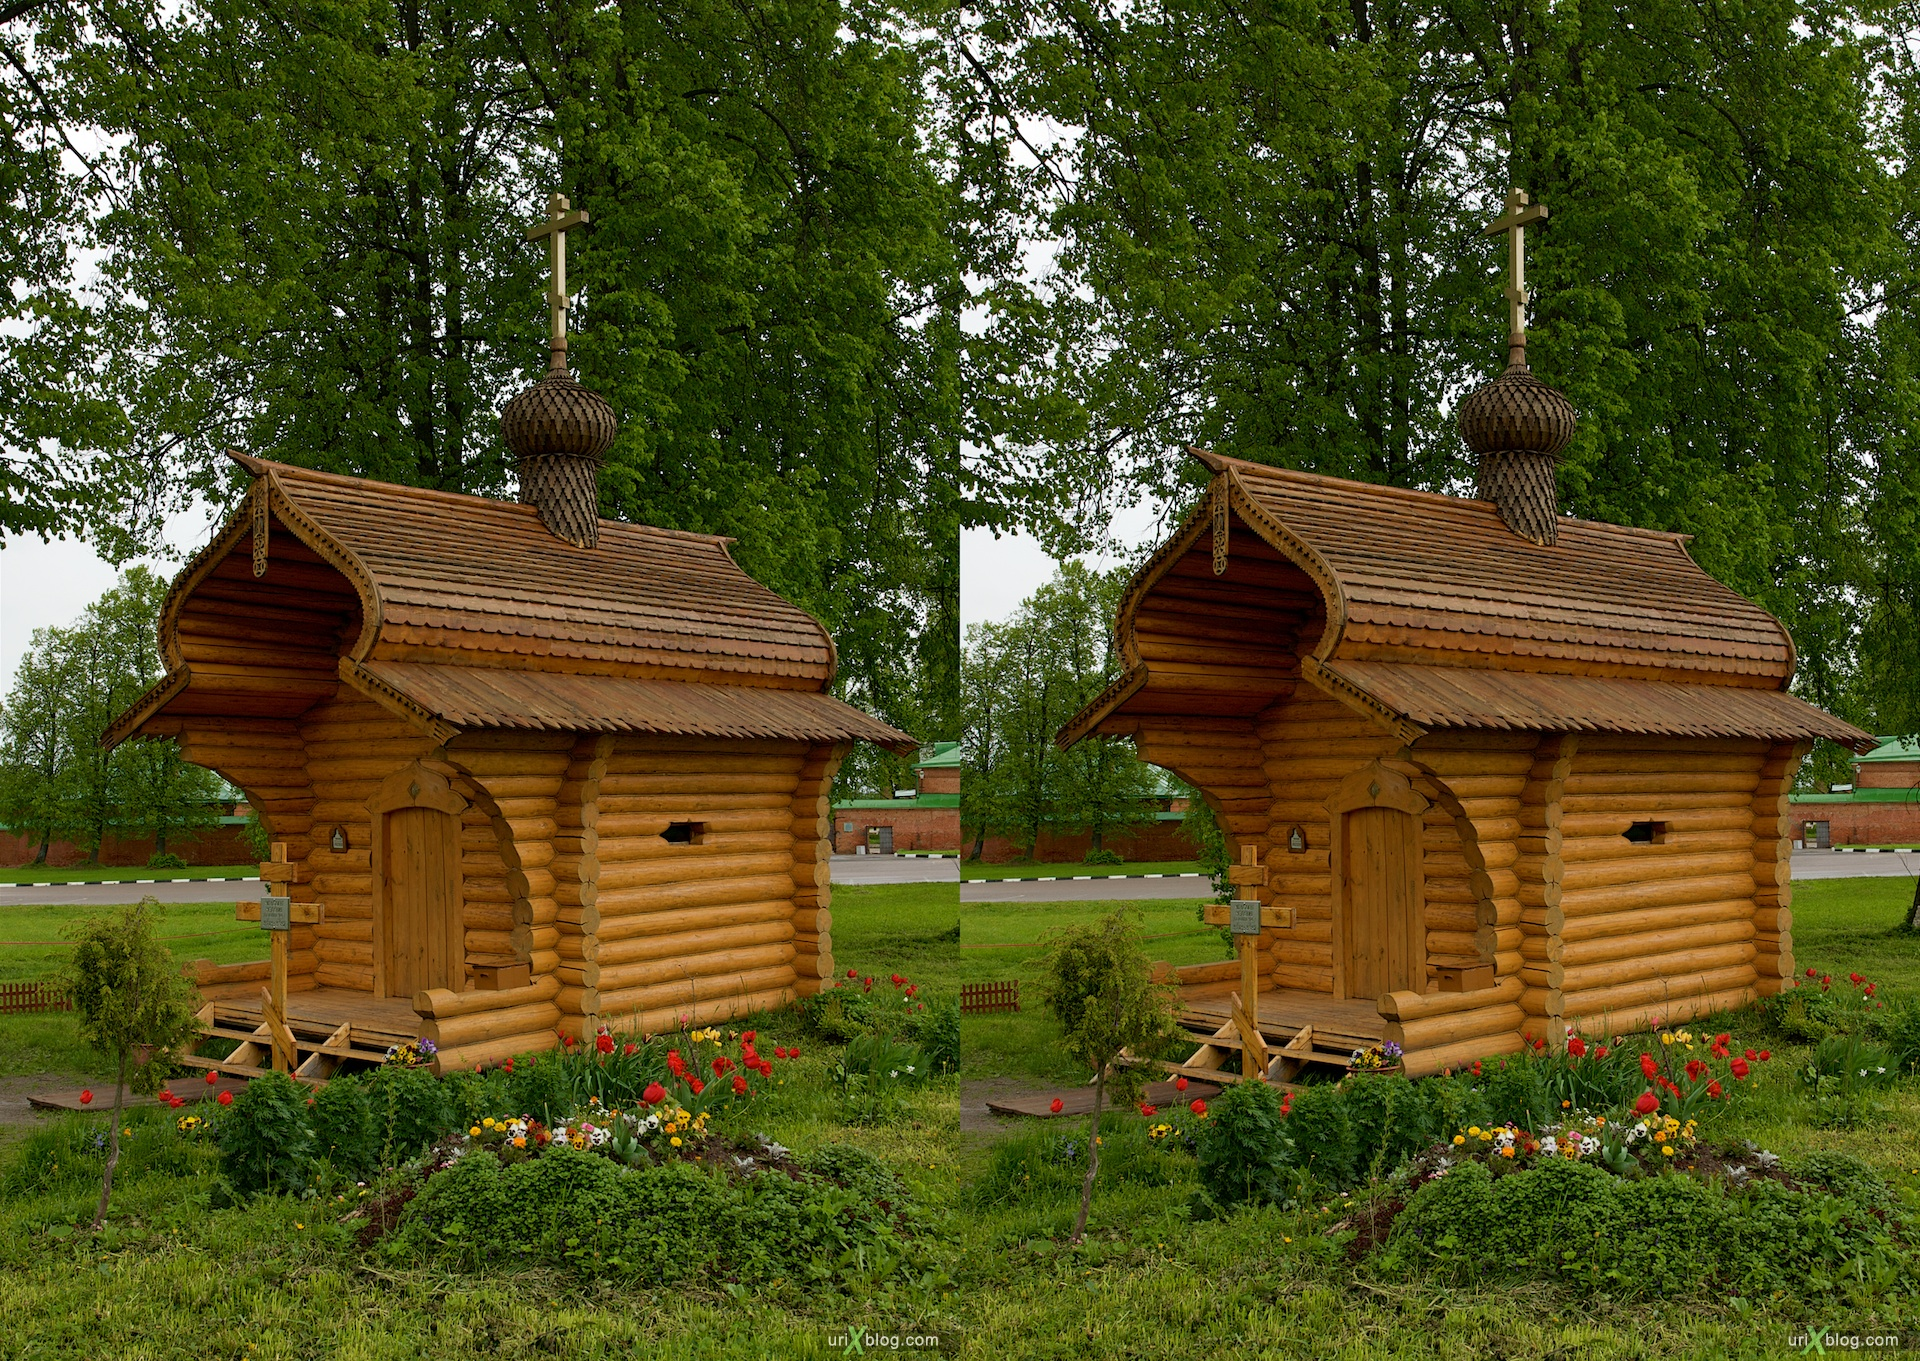 2009 Бородинское поле Спасо-Бородинский монастырь 3D, stereo, cross-eyed, стерео, стереопара